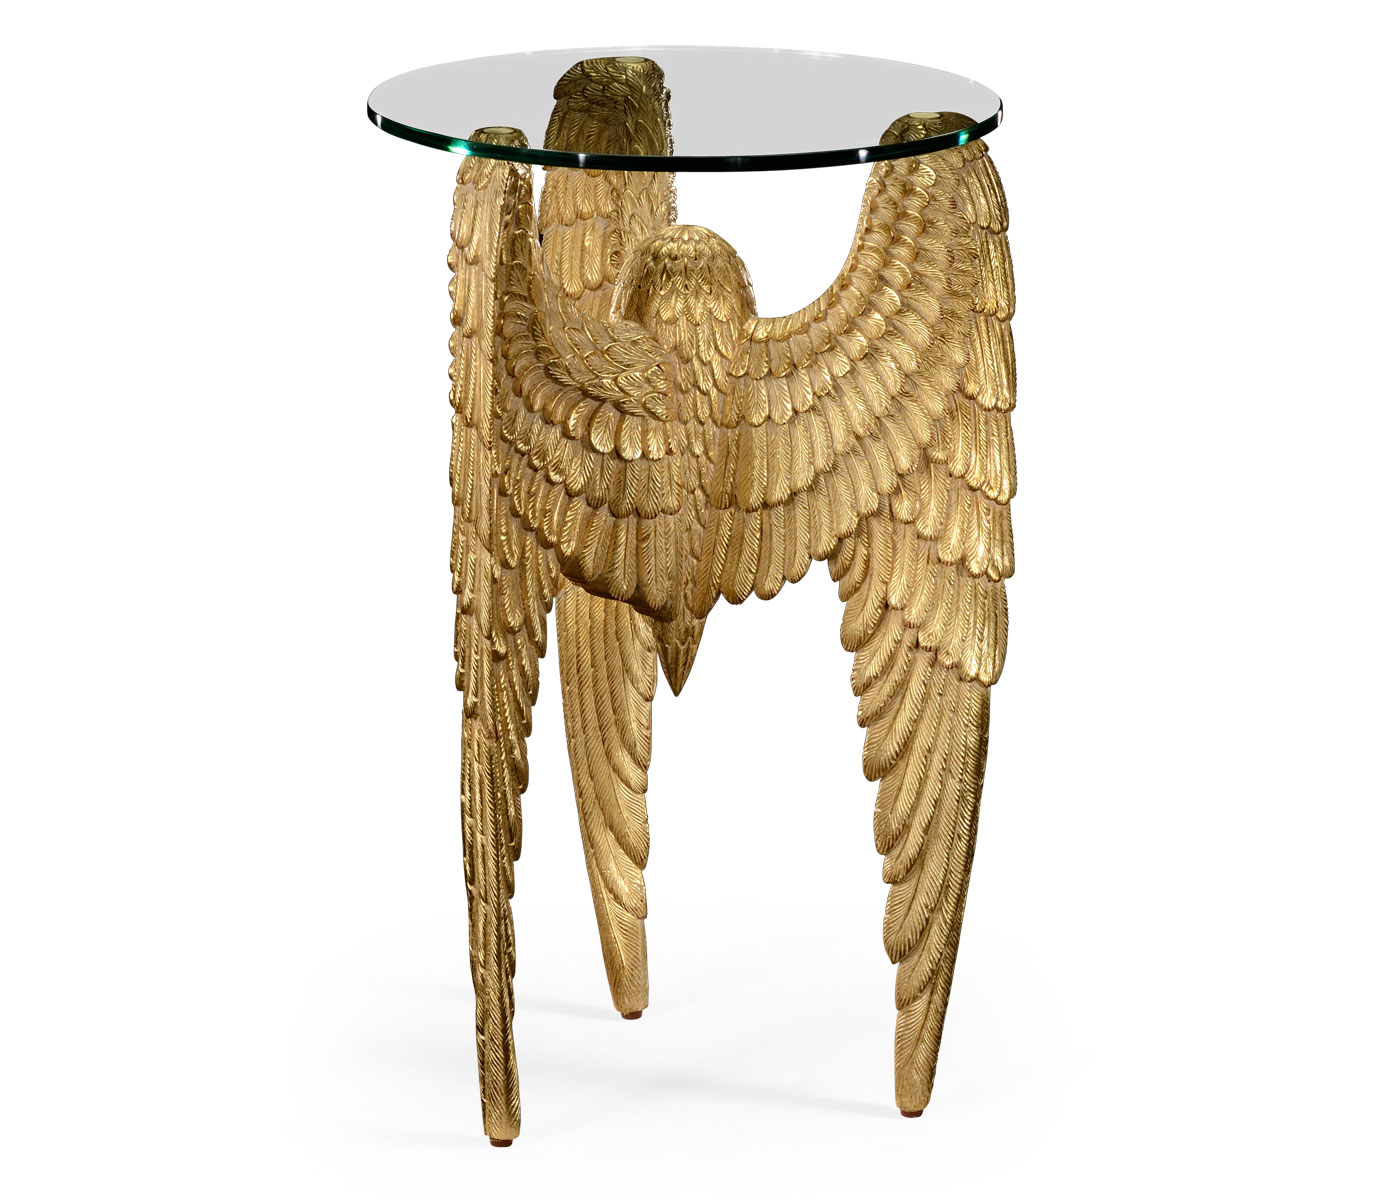 angels wing side table winged designer tables tall gold accent limited production design gilded partner wall mirrors chairs available hospitality residential interior butterfly